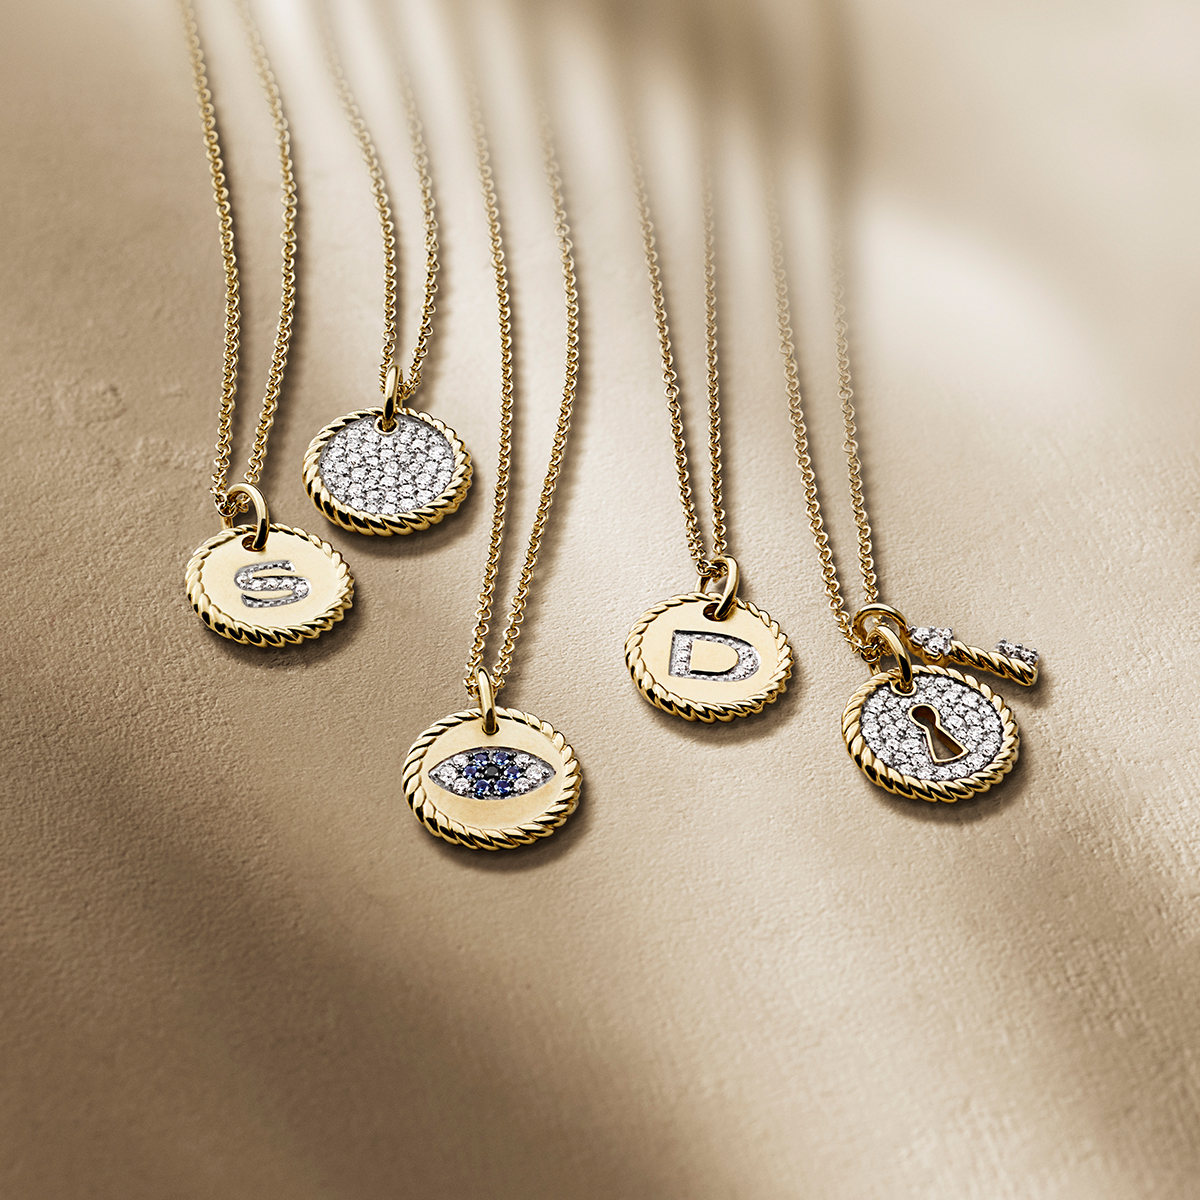 Trend To Watch: Delicate Amulet Necklaces